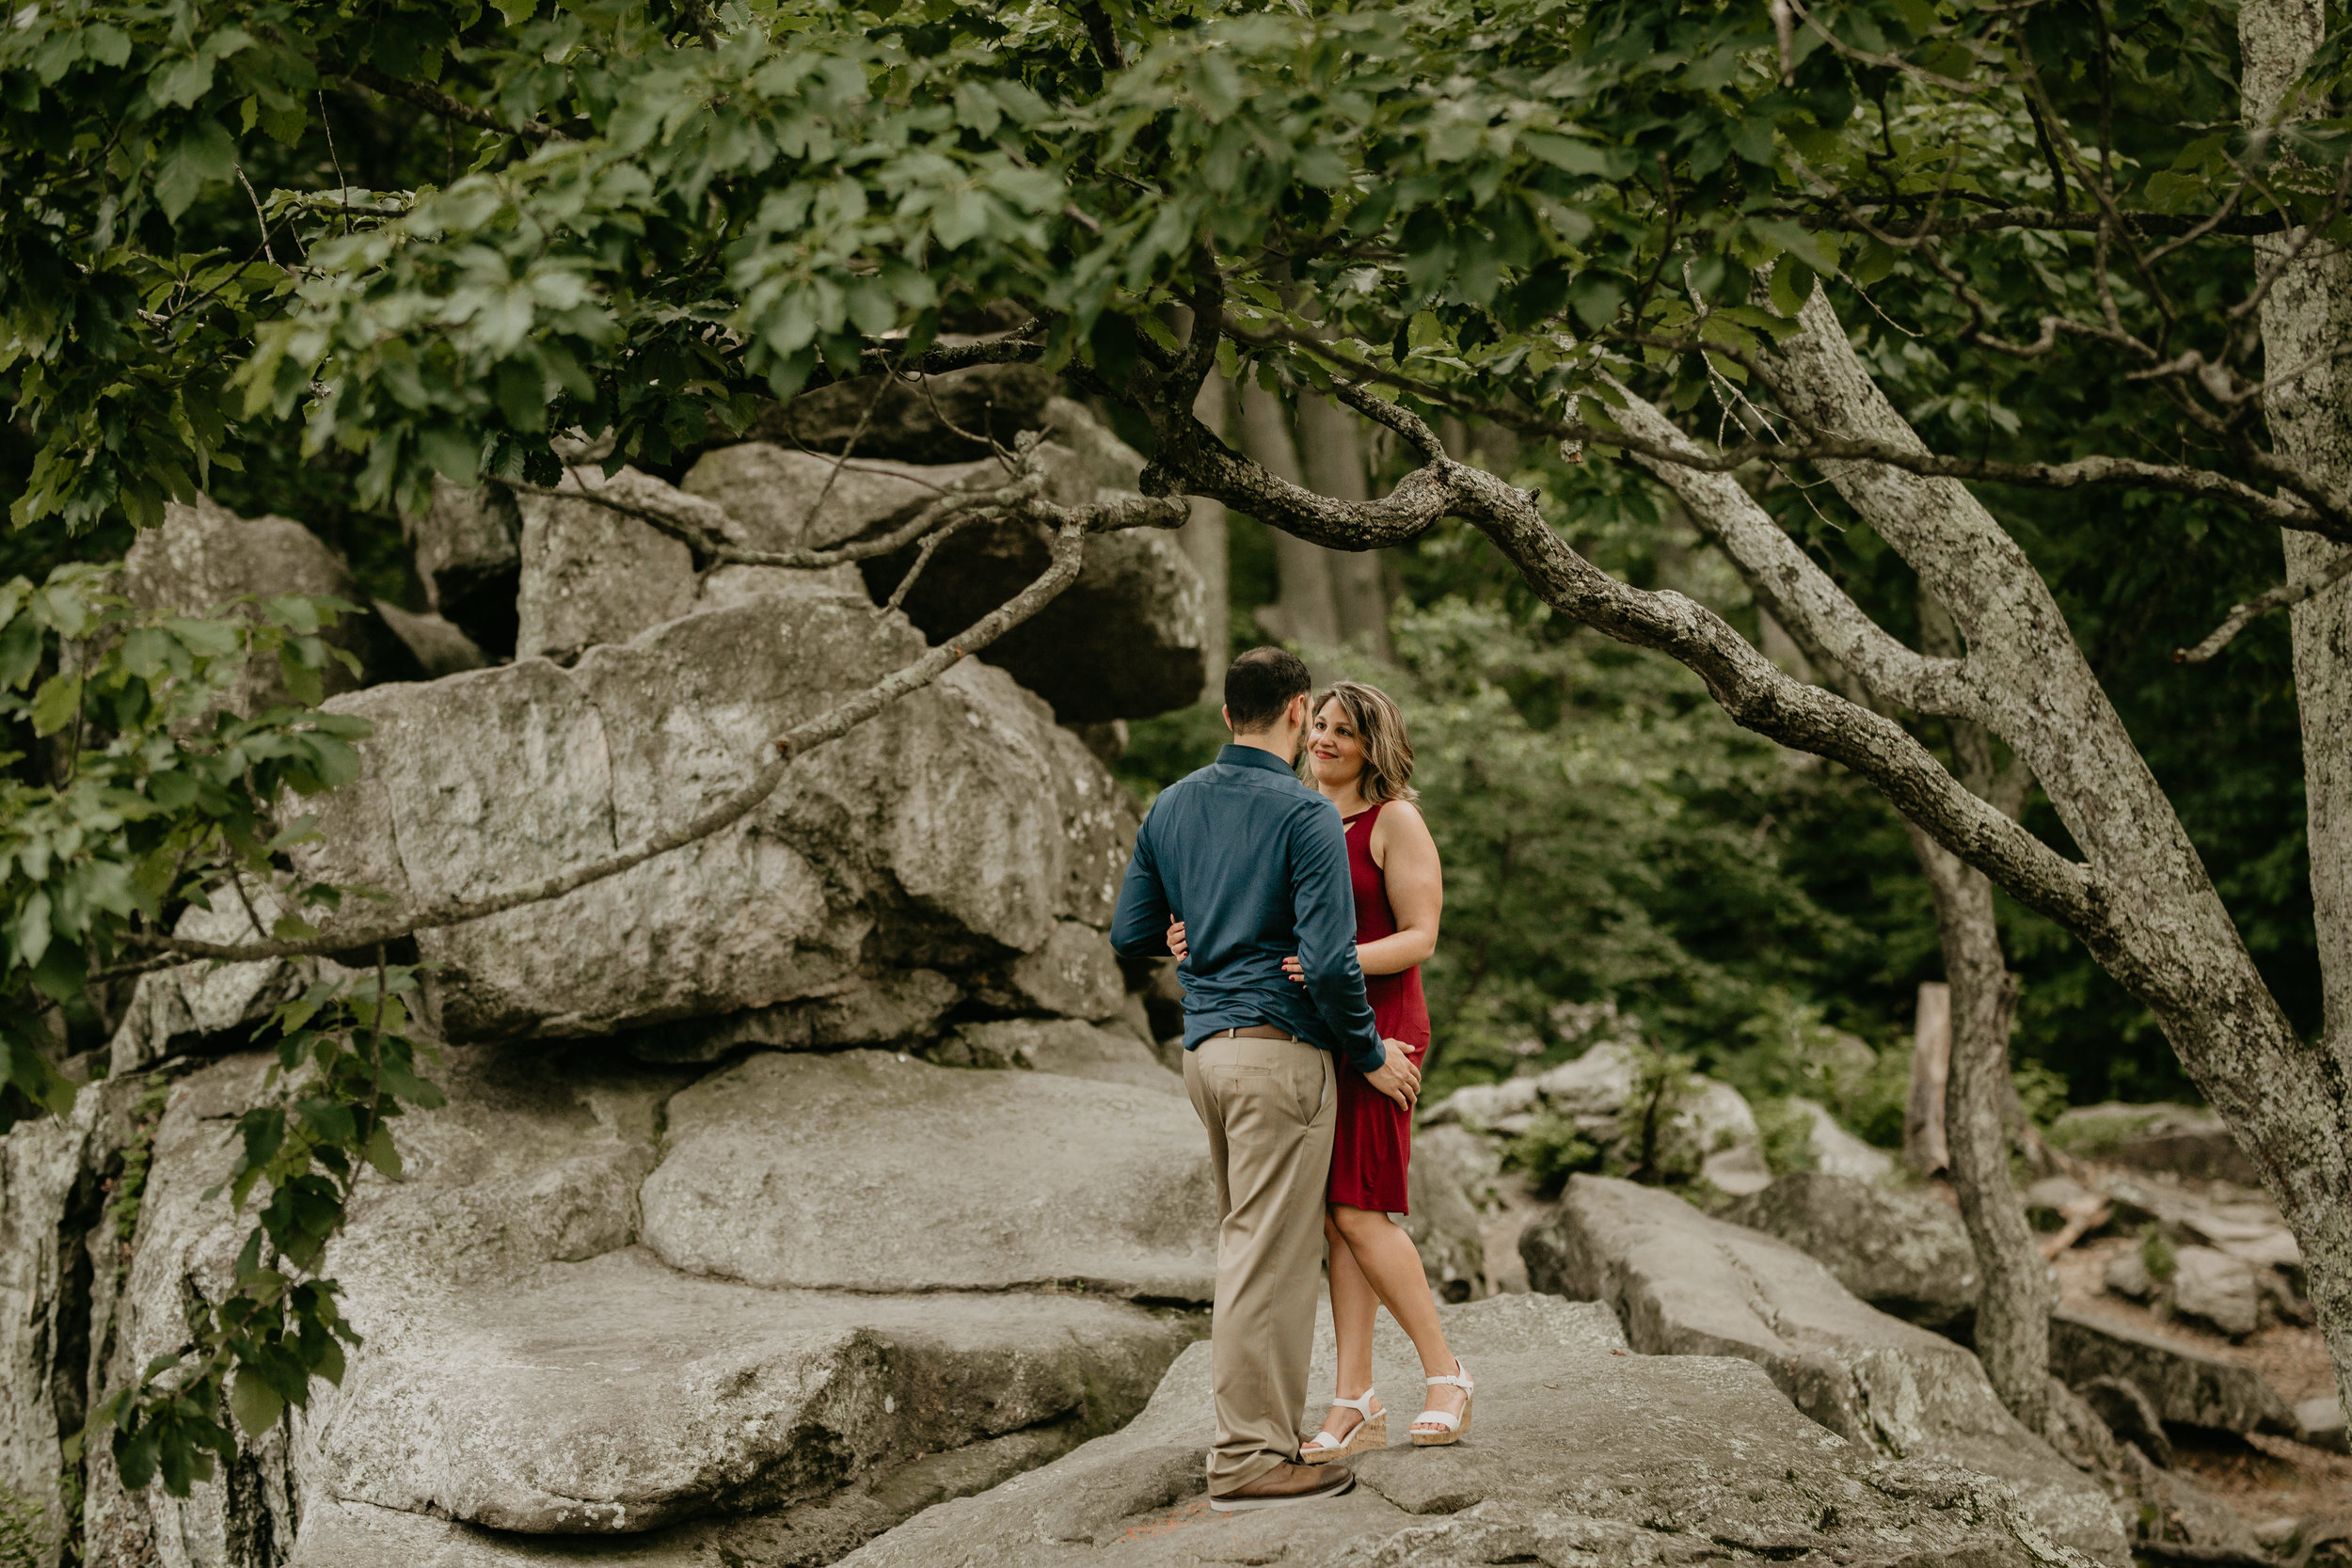 Nicole-Daacke-Photography-rock-state-park-overlook-king-queen-seat-maryland-hiking-adventure-engagement-session-photos-portraits-summer-bel-air-dog-engagement-session-18.jpg